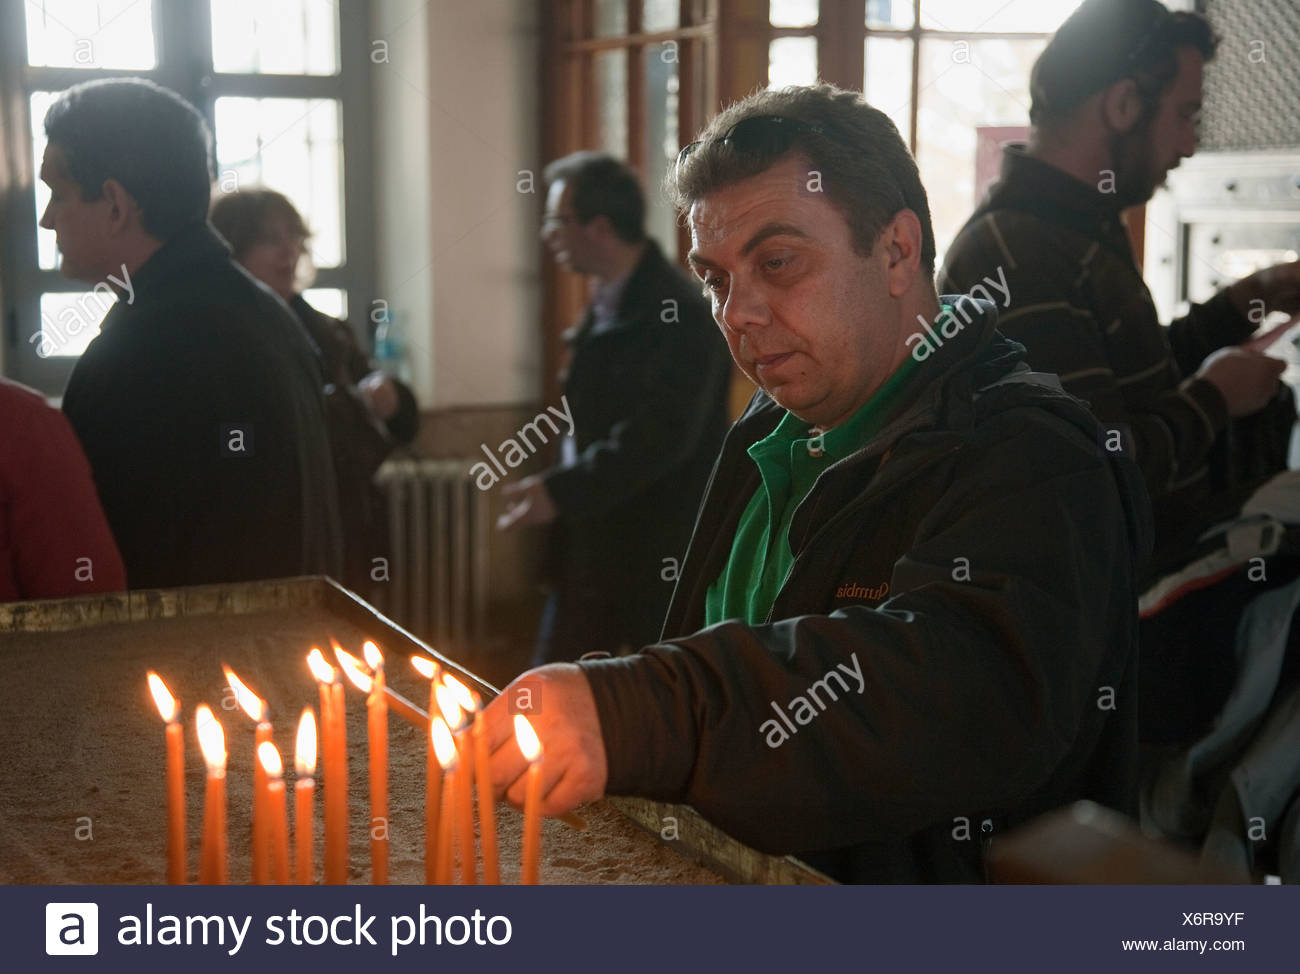 Believer lighting a candle in church, Heybeliada, Turkey - Stock Image